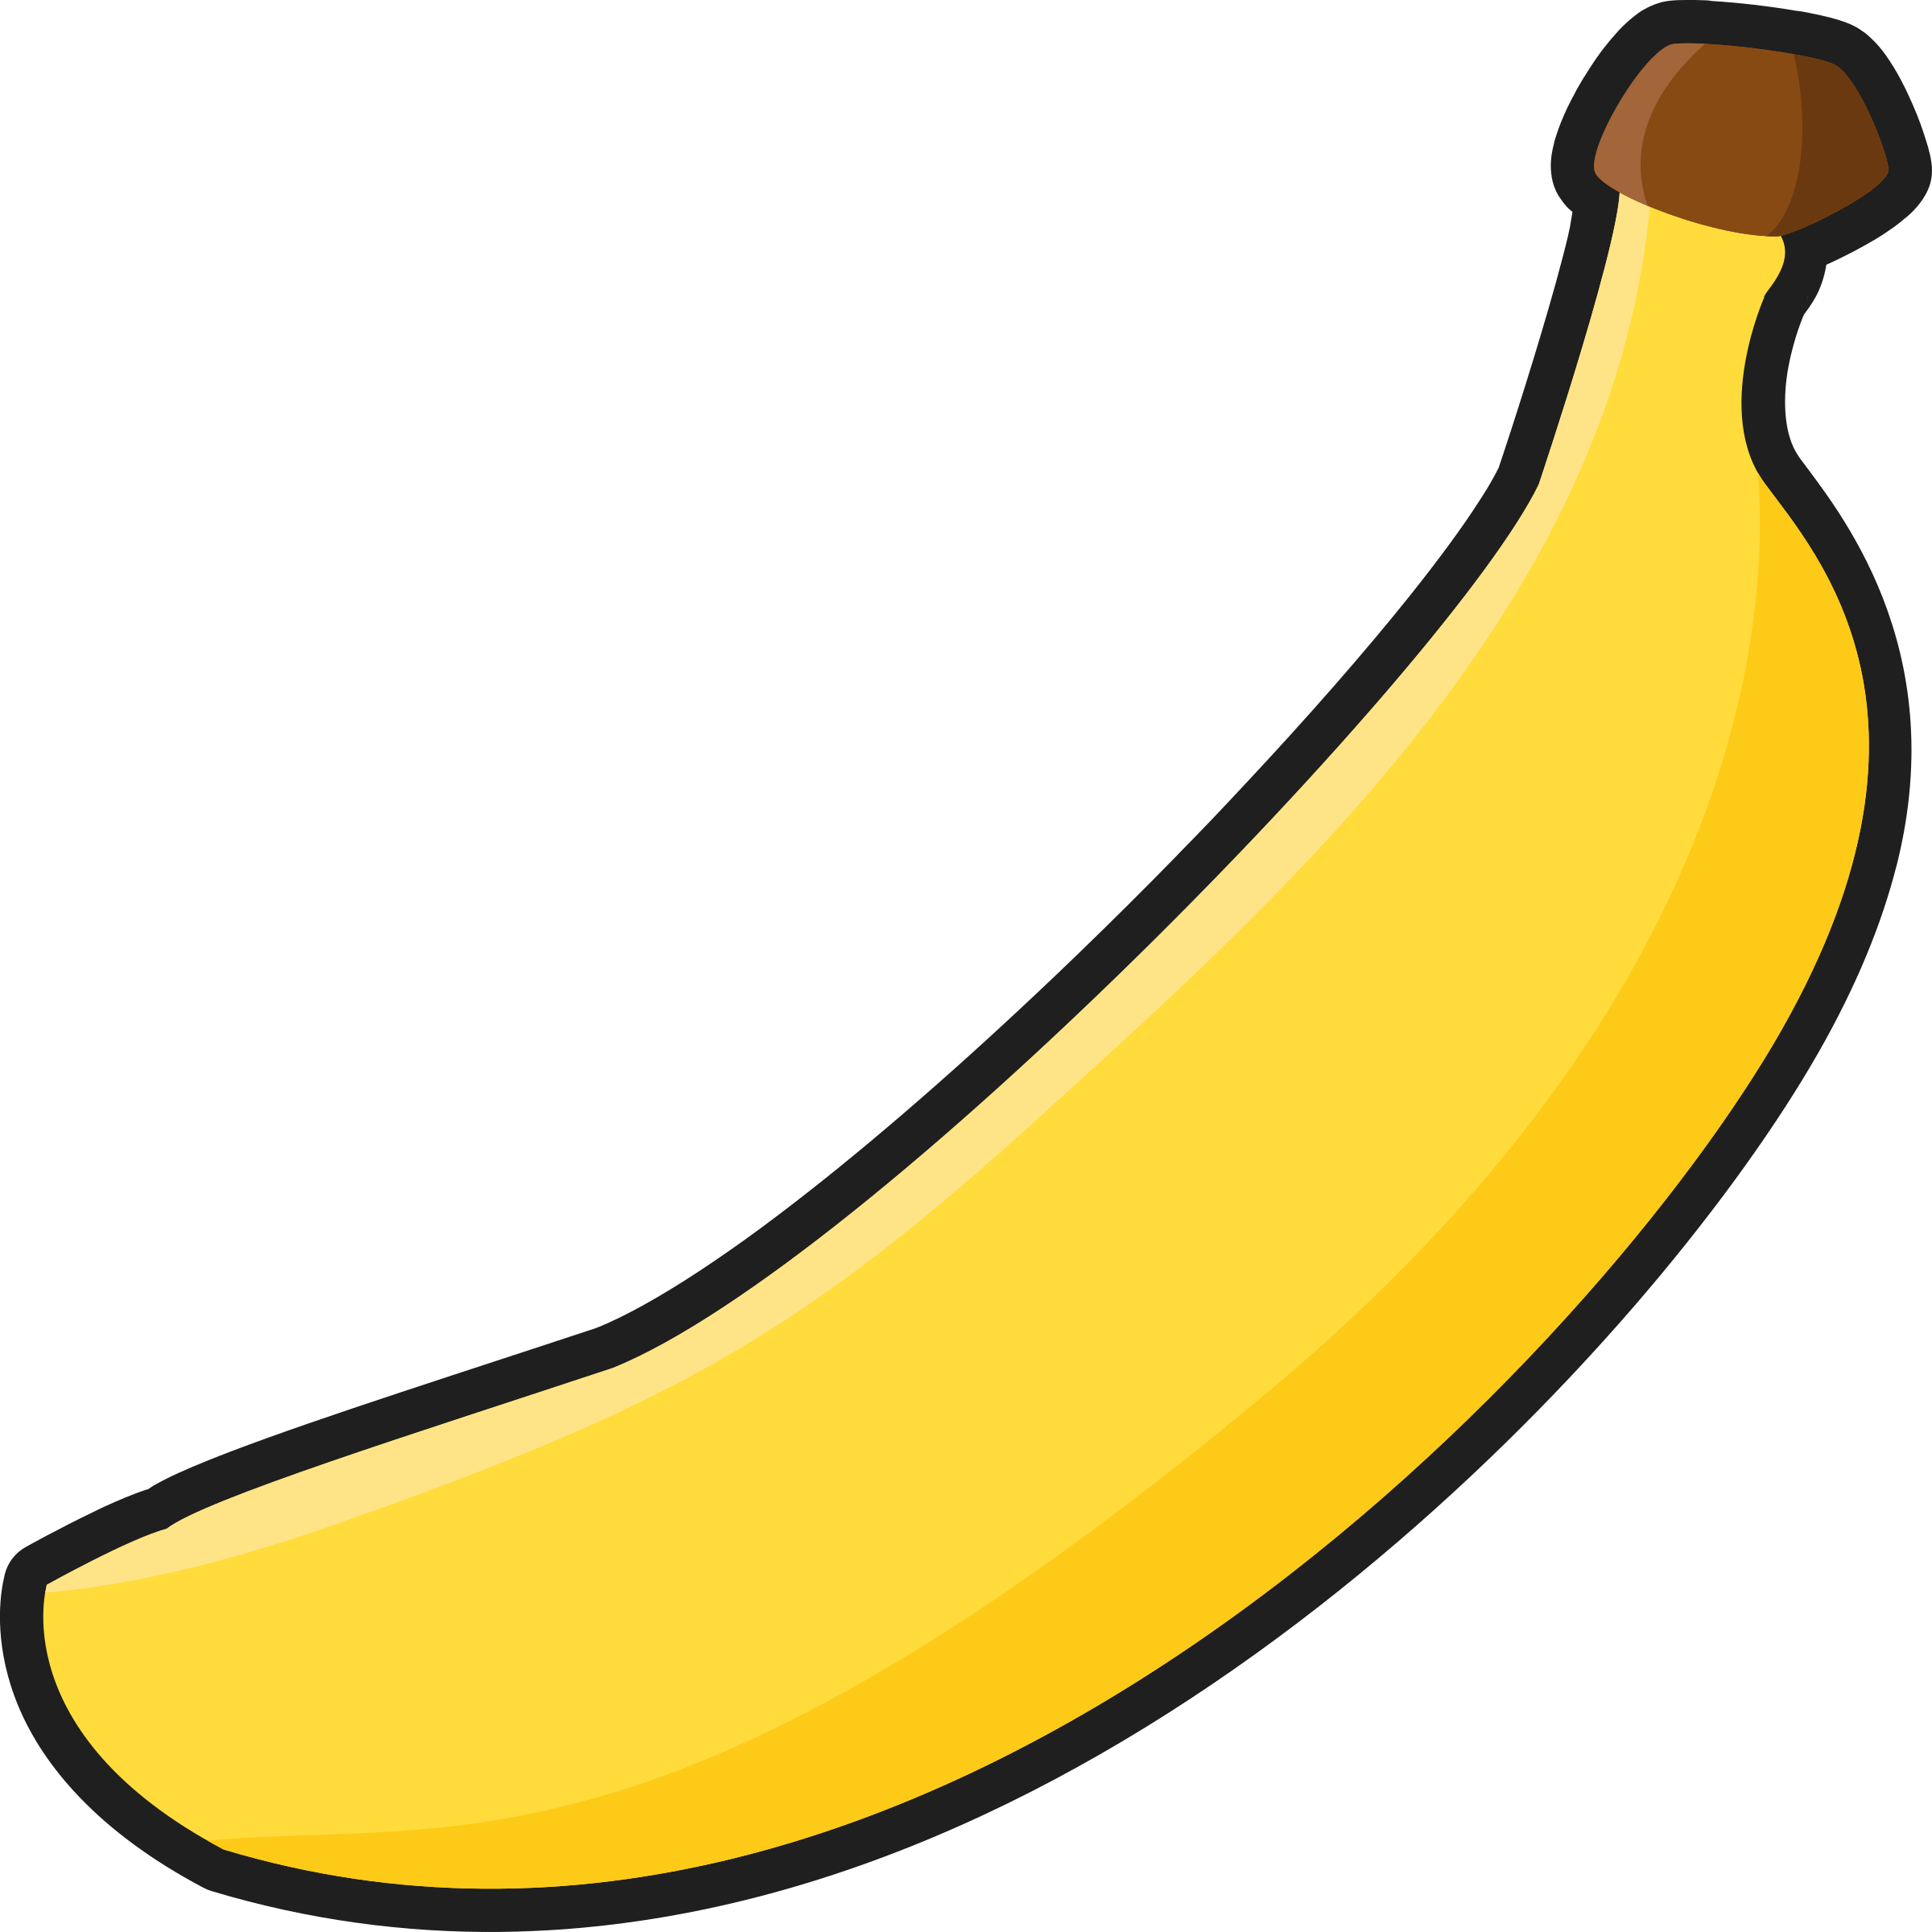 Black and white clip. Banana clipart reference